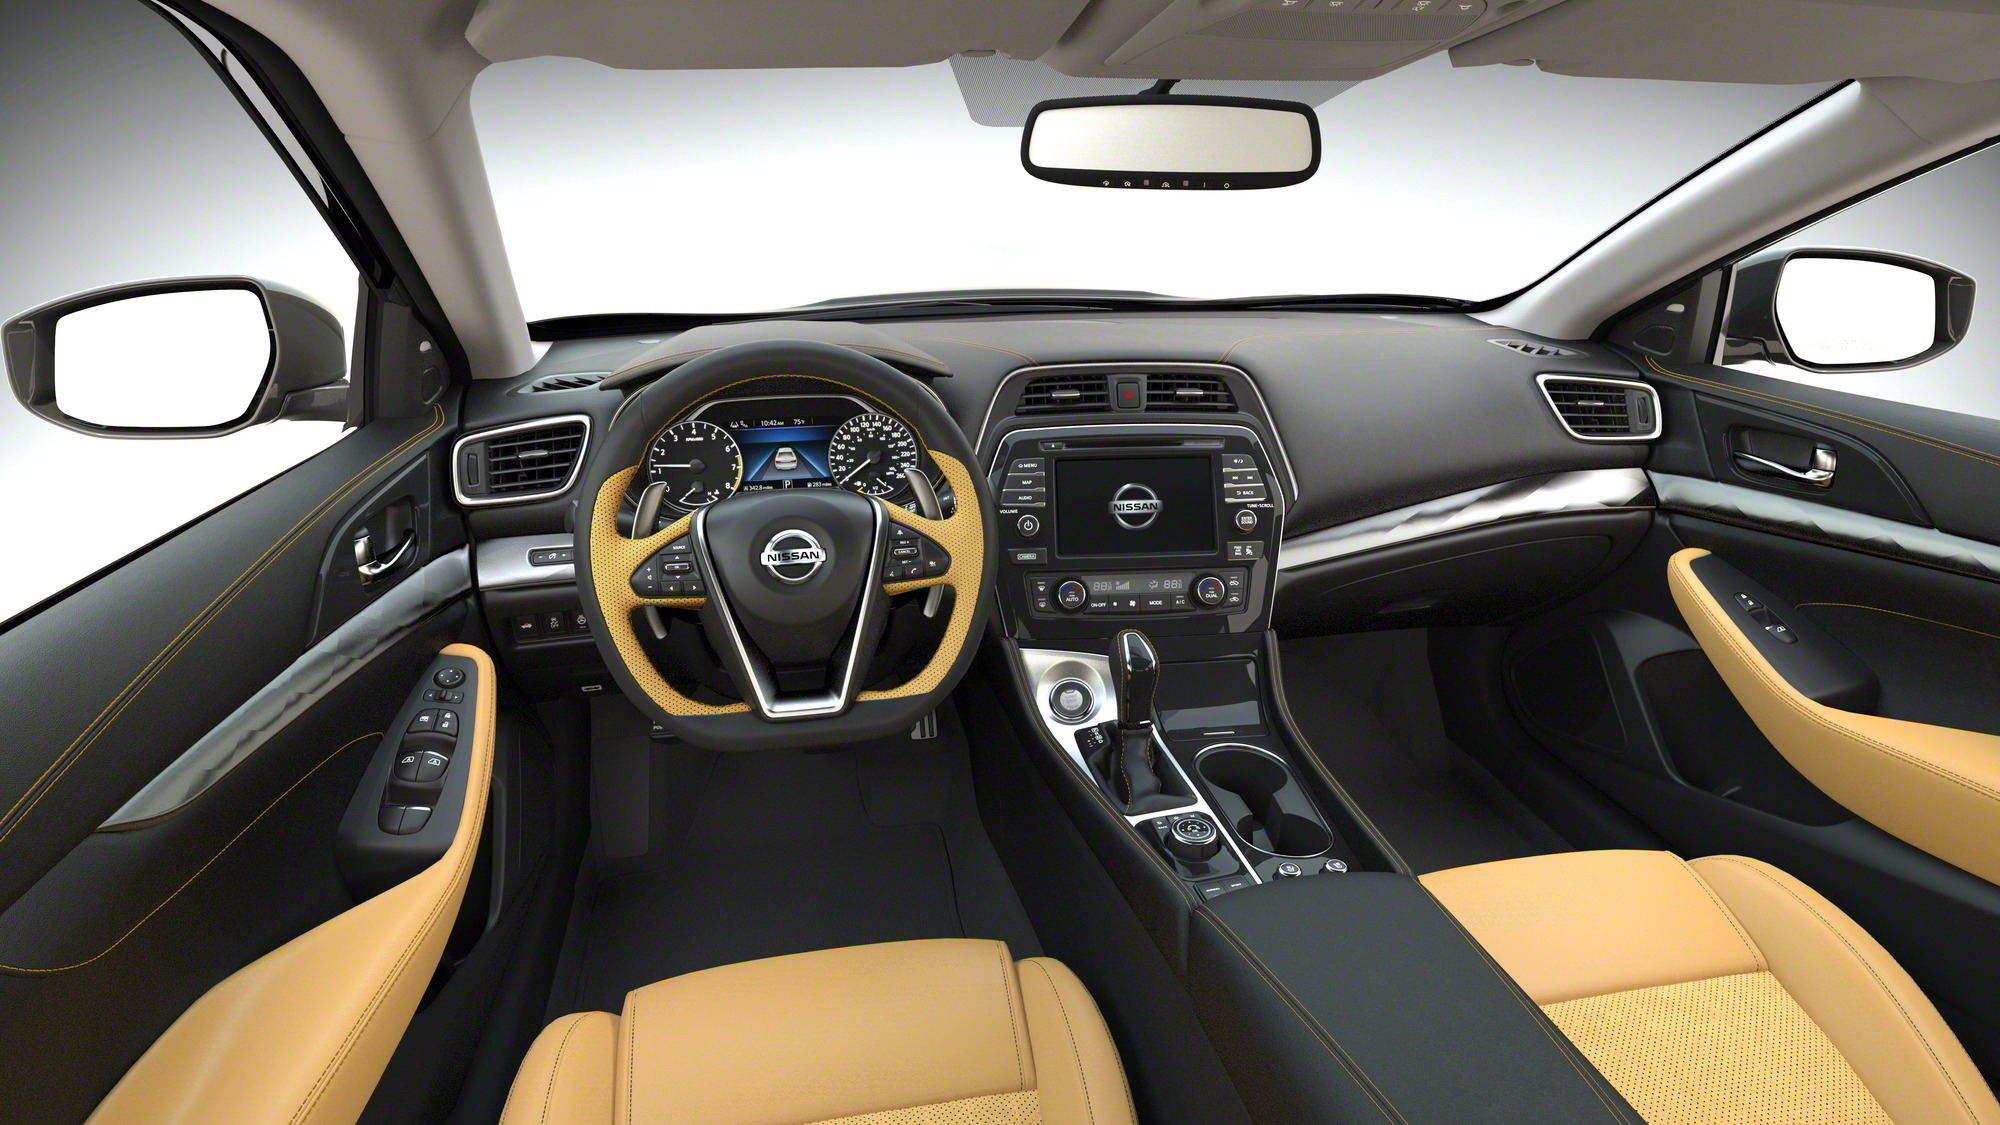 2016 2017 nissan maxima gallery 625173 top speed. Black Bedroom Furniture Sets. Home Design Ideas